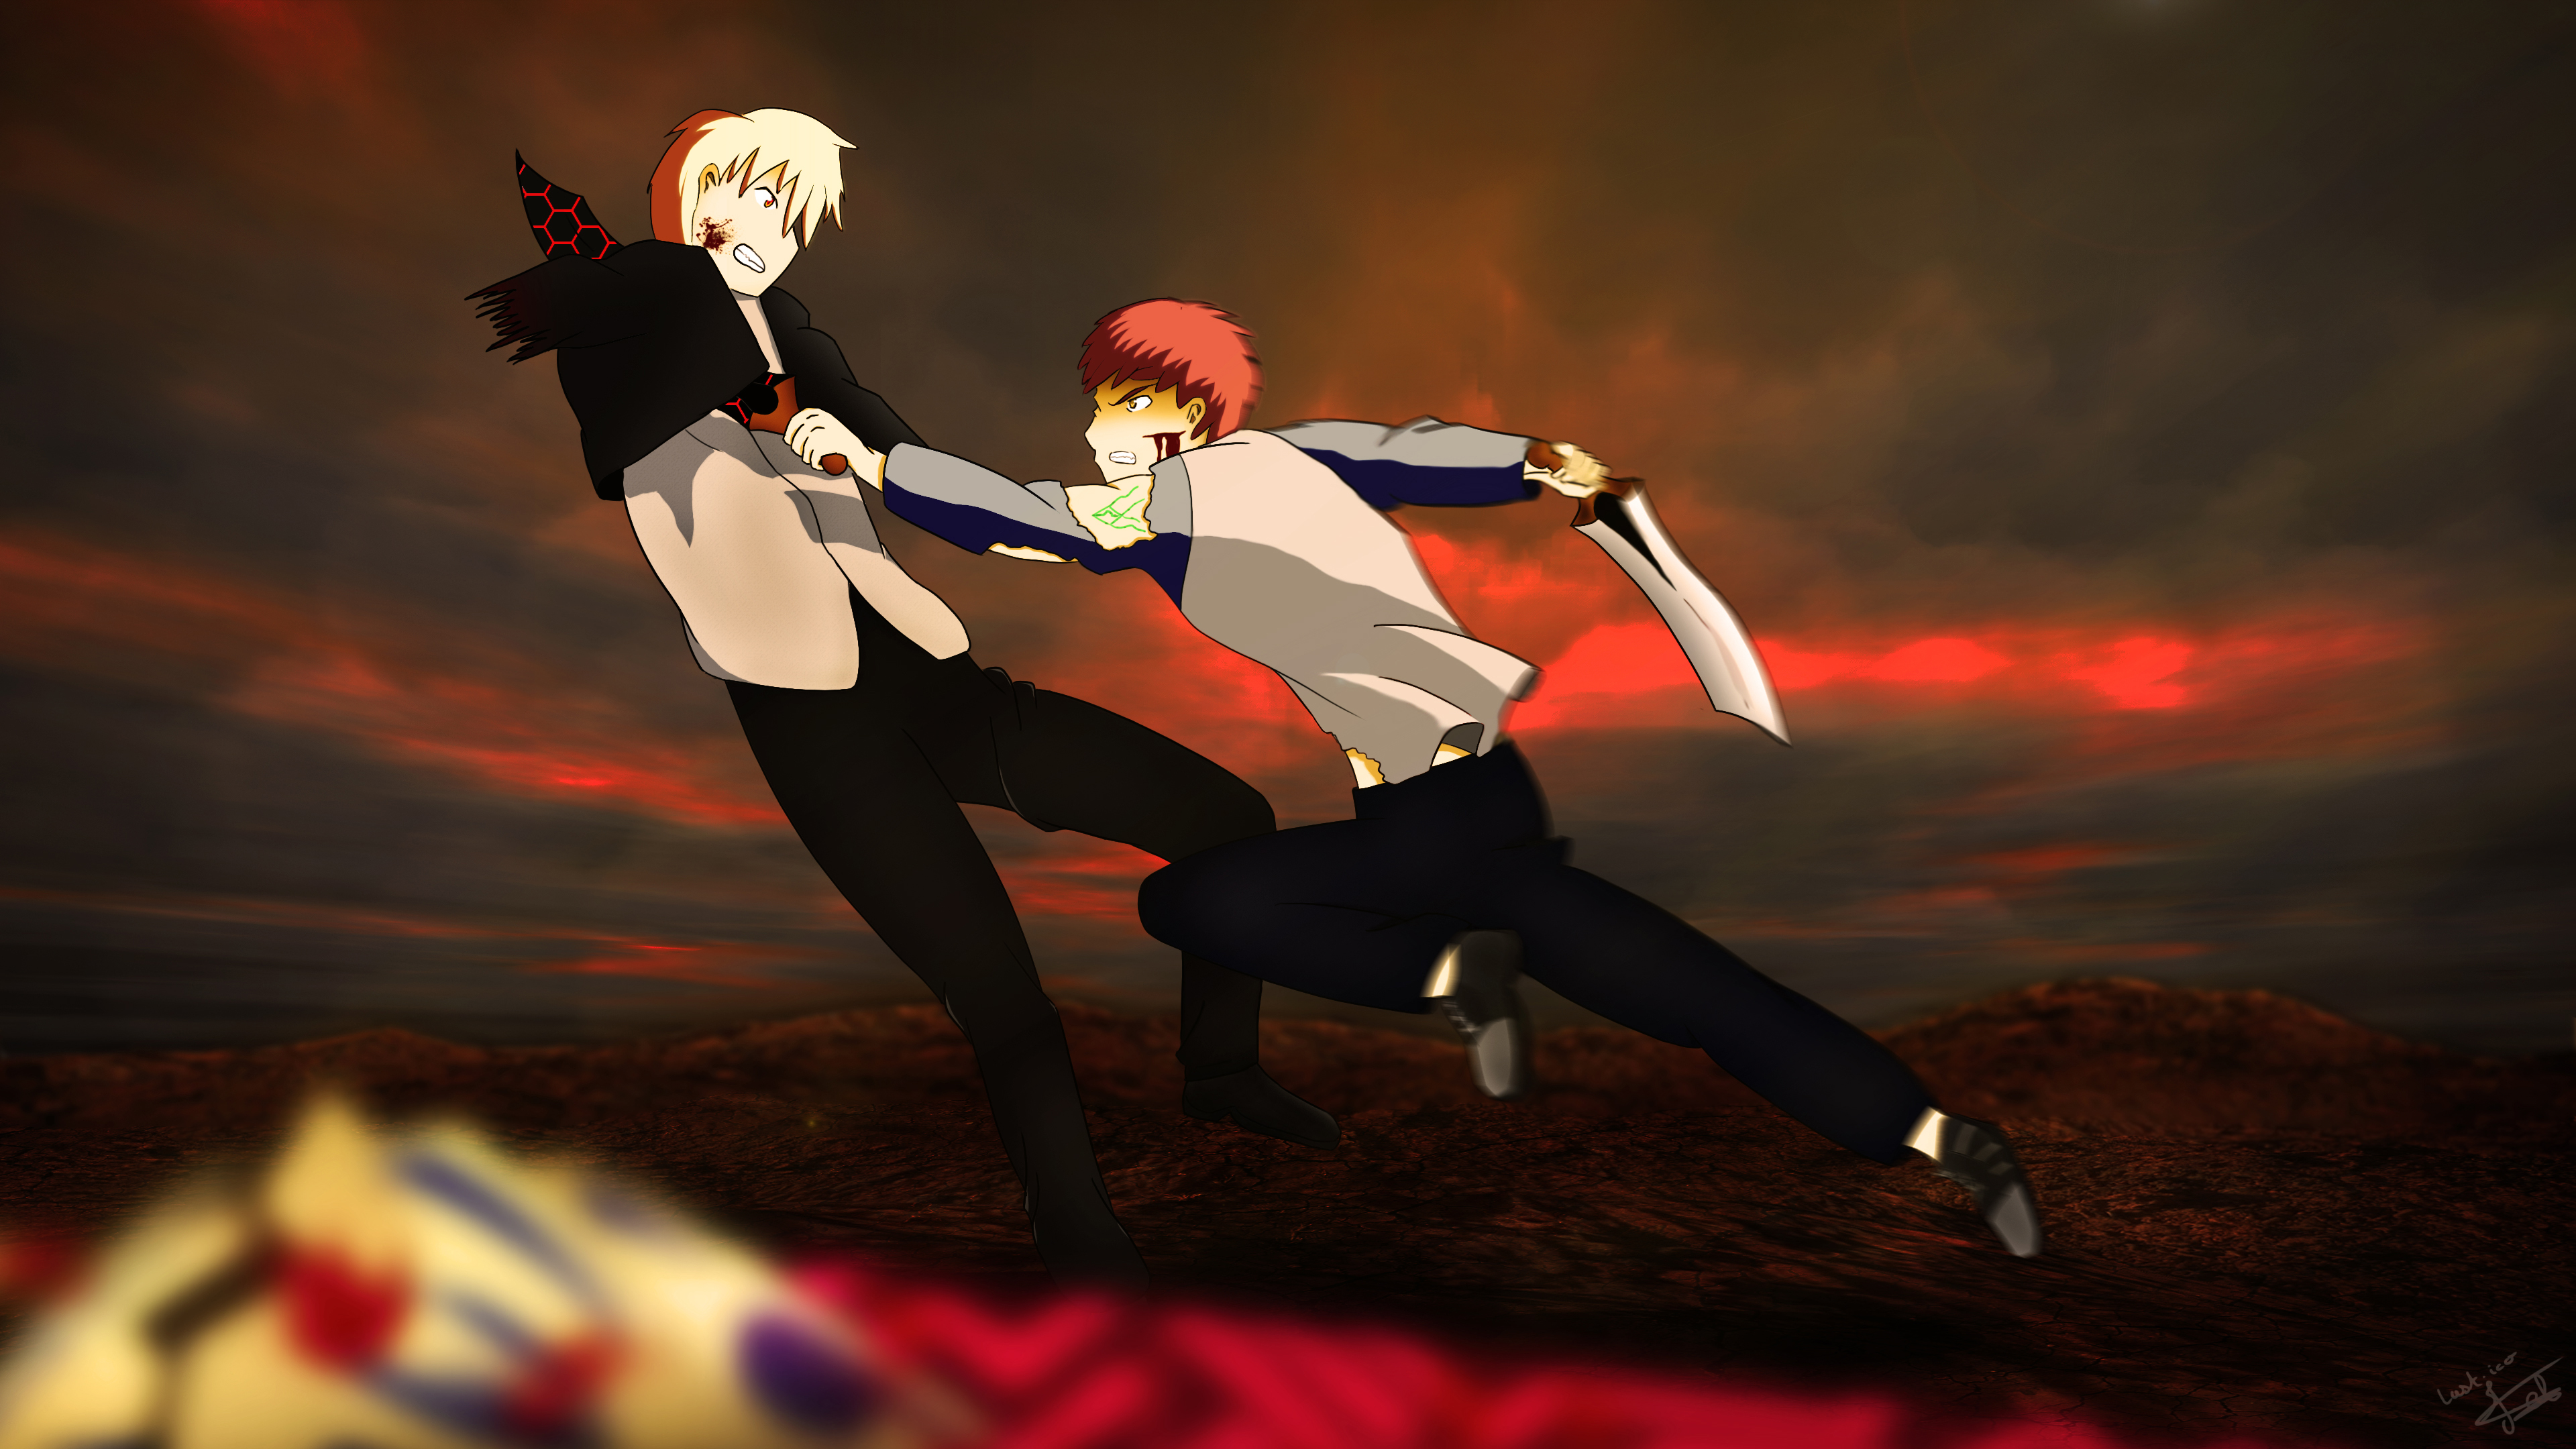 Fate Stay Night Ubw Shirou Vs Gilgamesh 4k Ultra Hd Wallpaper